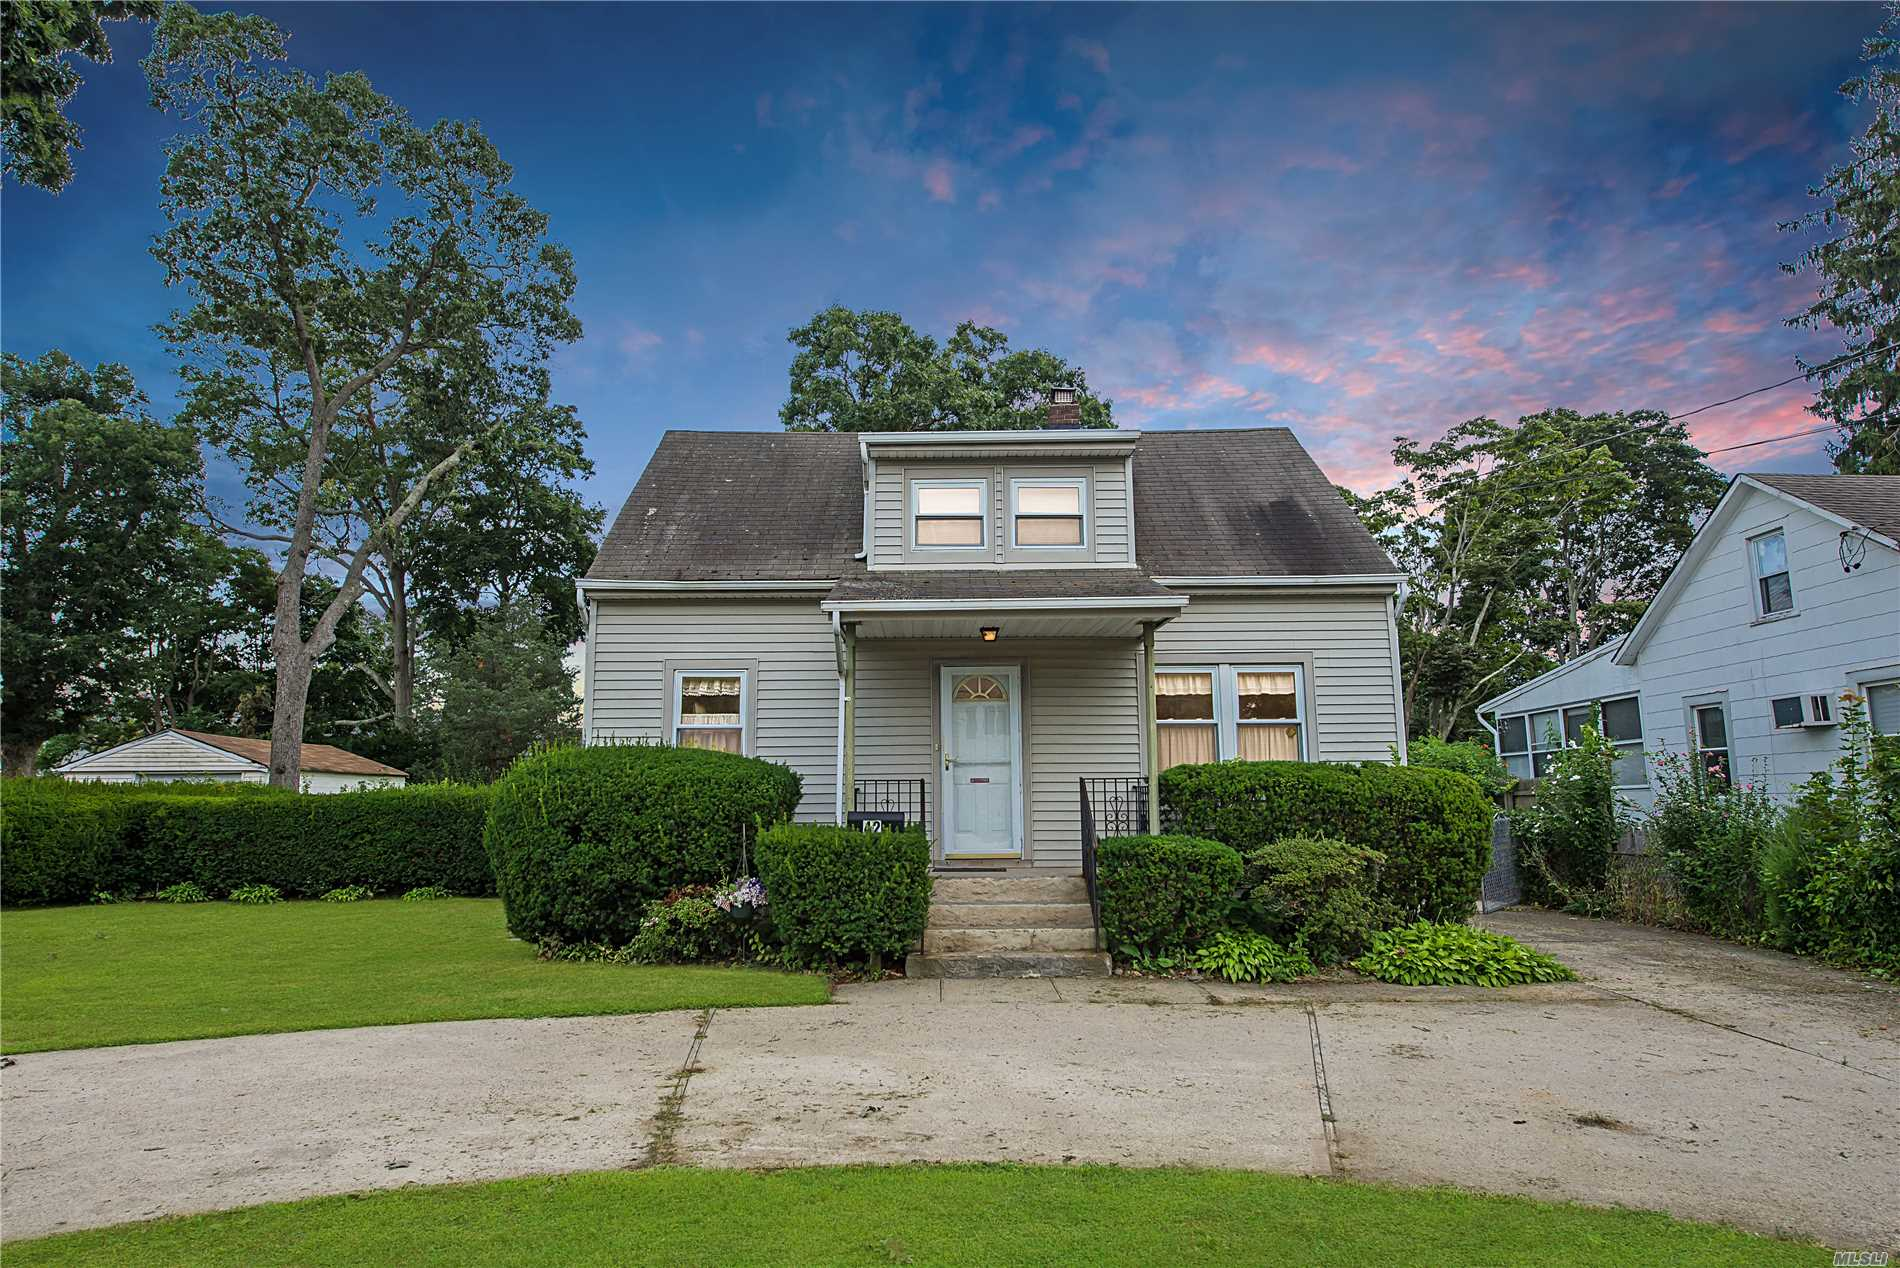 Photo of home for sale at 42 Bittermint St, Islip NY